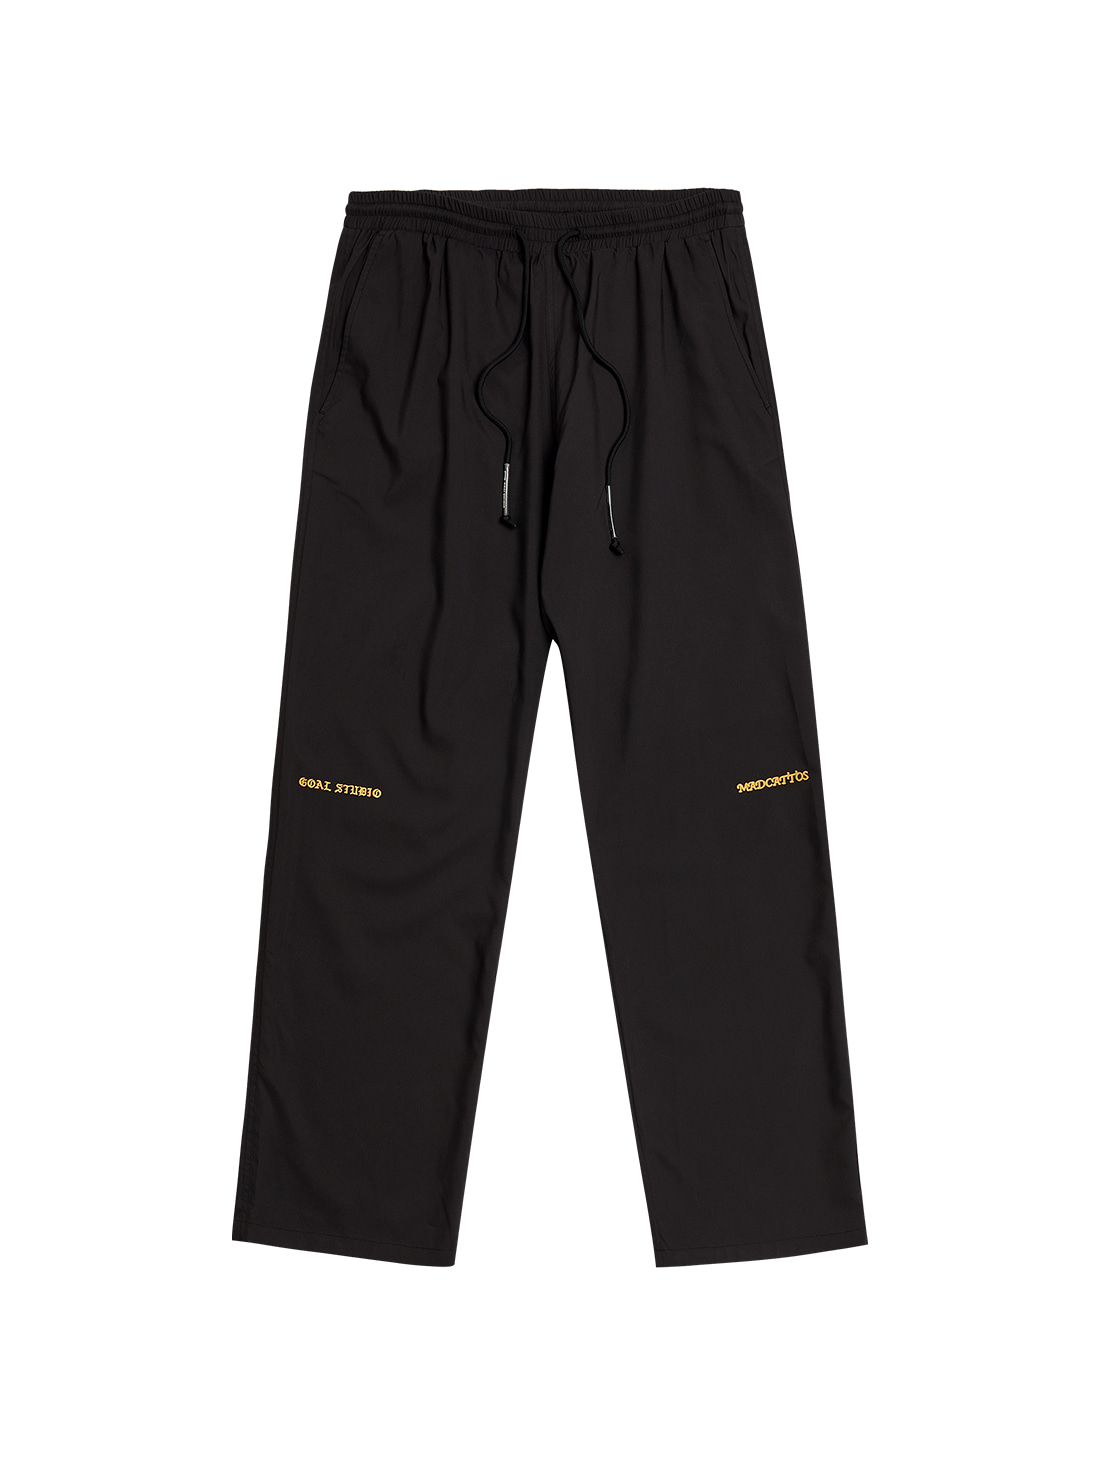 GOALSTUDIO MC WOVEN PANTS - BLACK